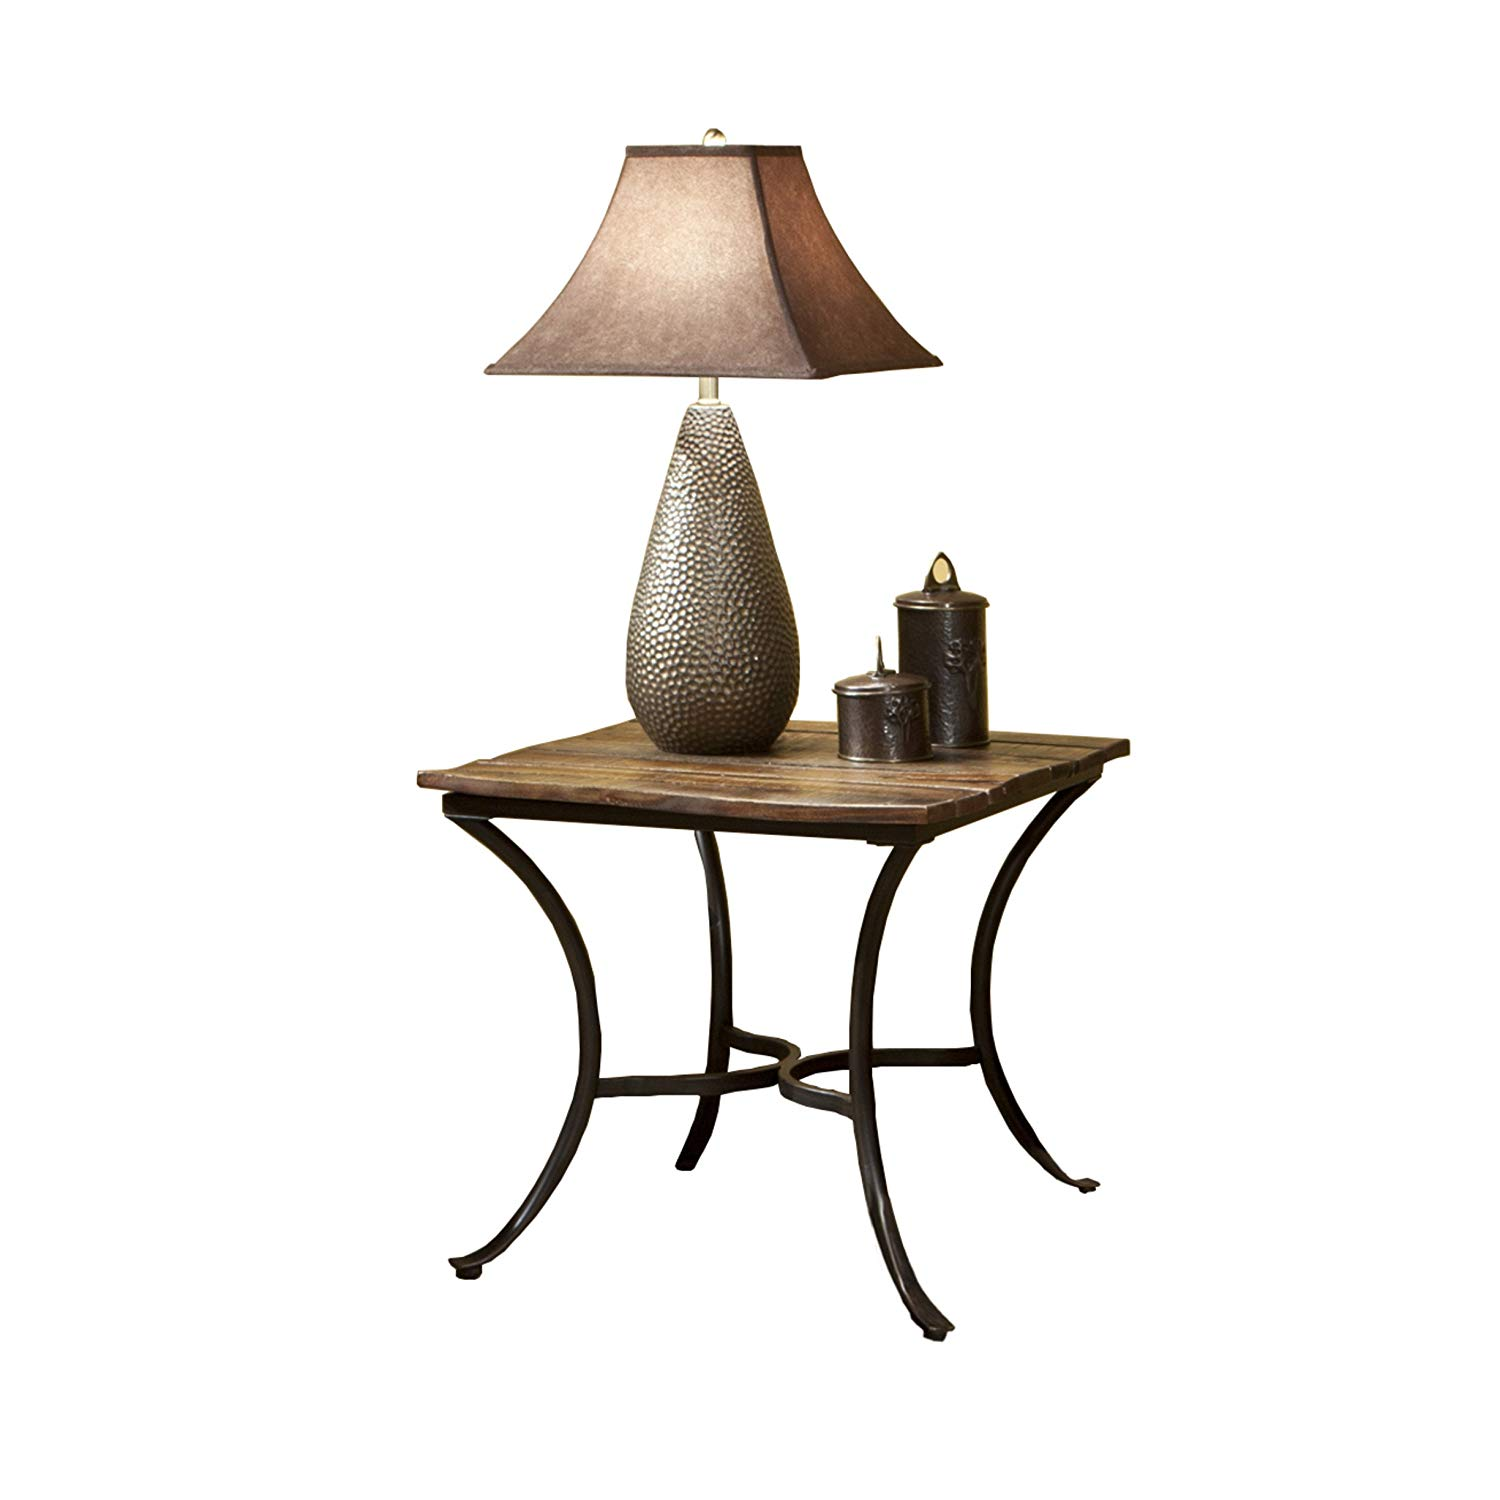 emerald home innsbruck medium brown end table with solid wood top and curved metal base kitchen dining granby coffee decor magnolia mini bar ethan allen night tables thin behind